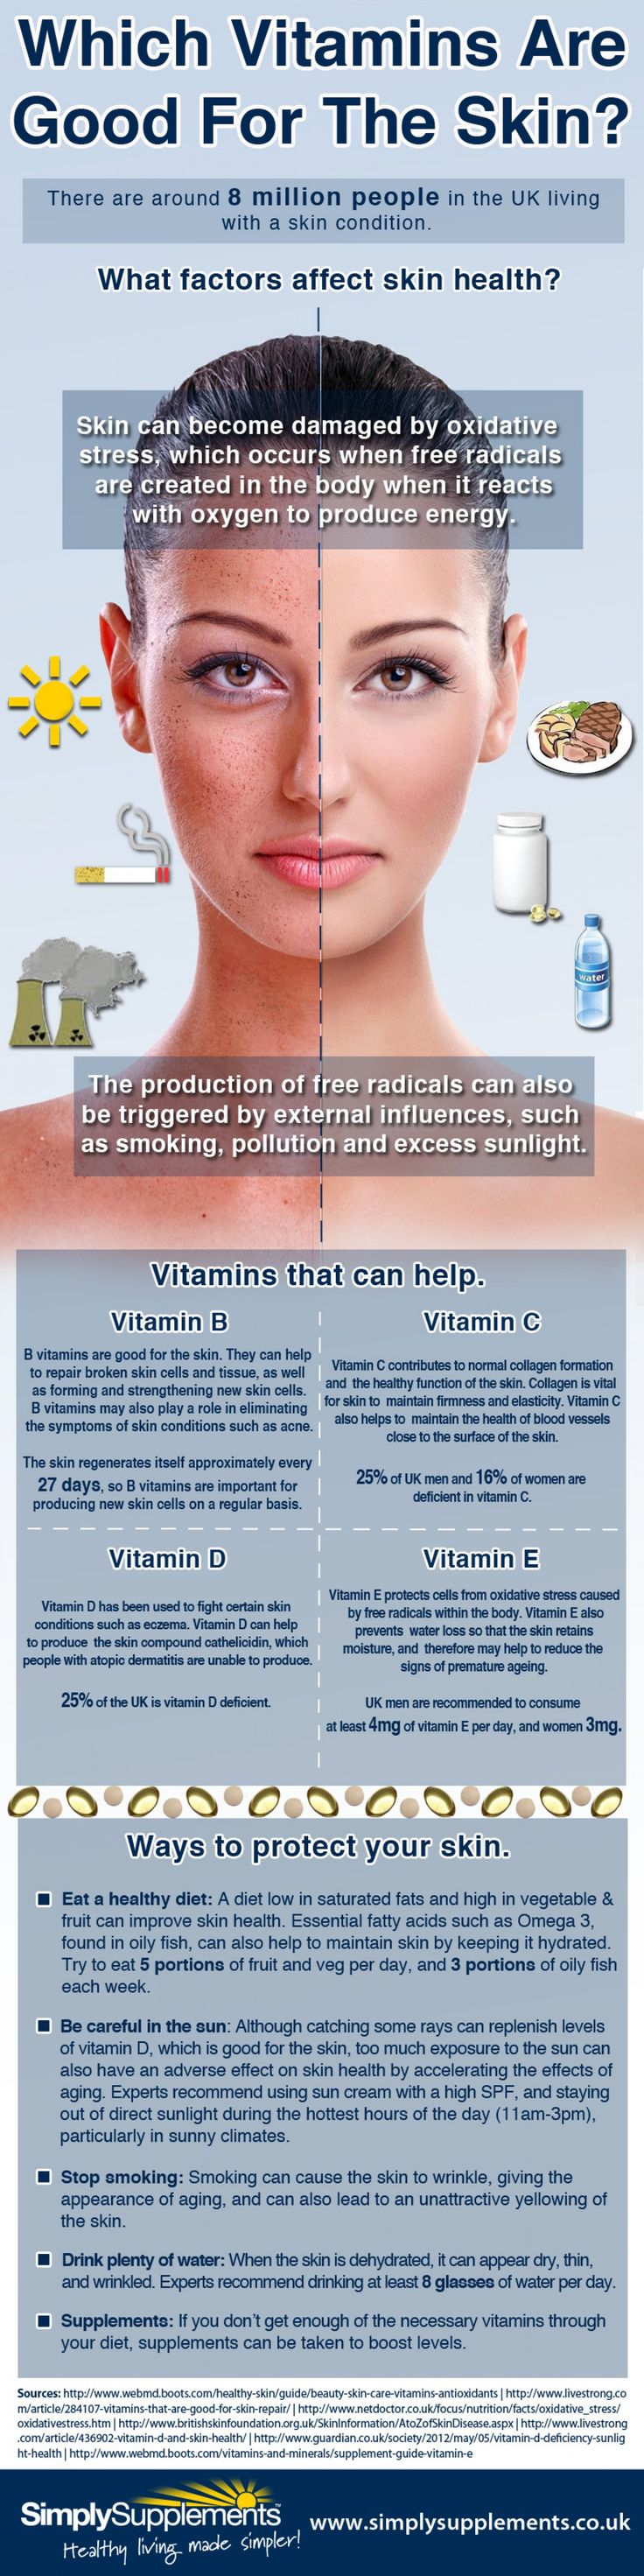 Which vitamins are good for your skin We always re mend ting your vitamin intake by